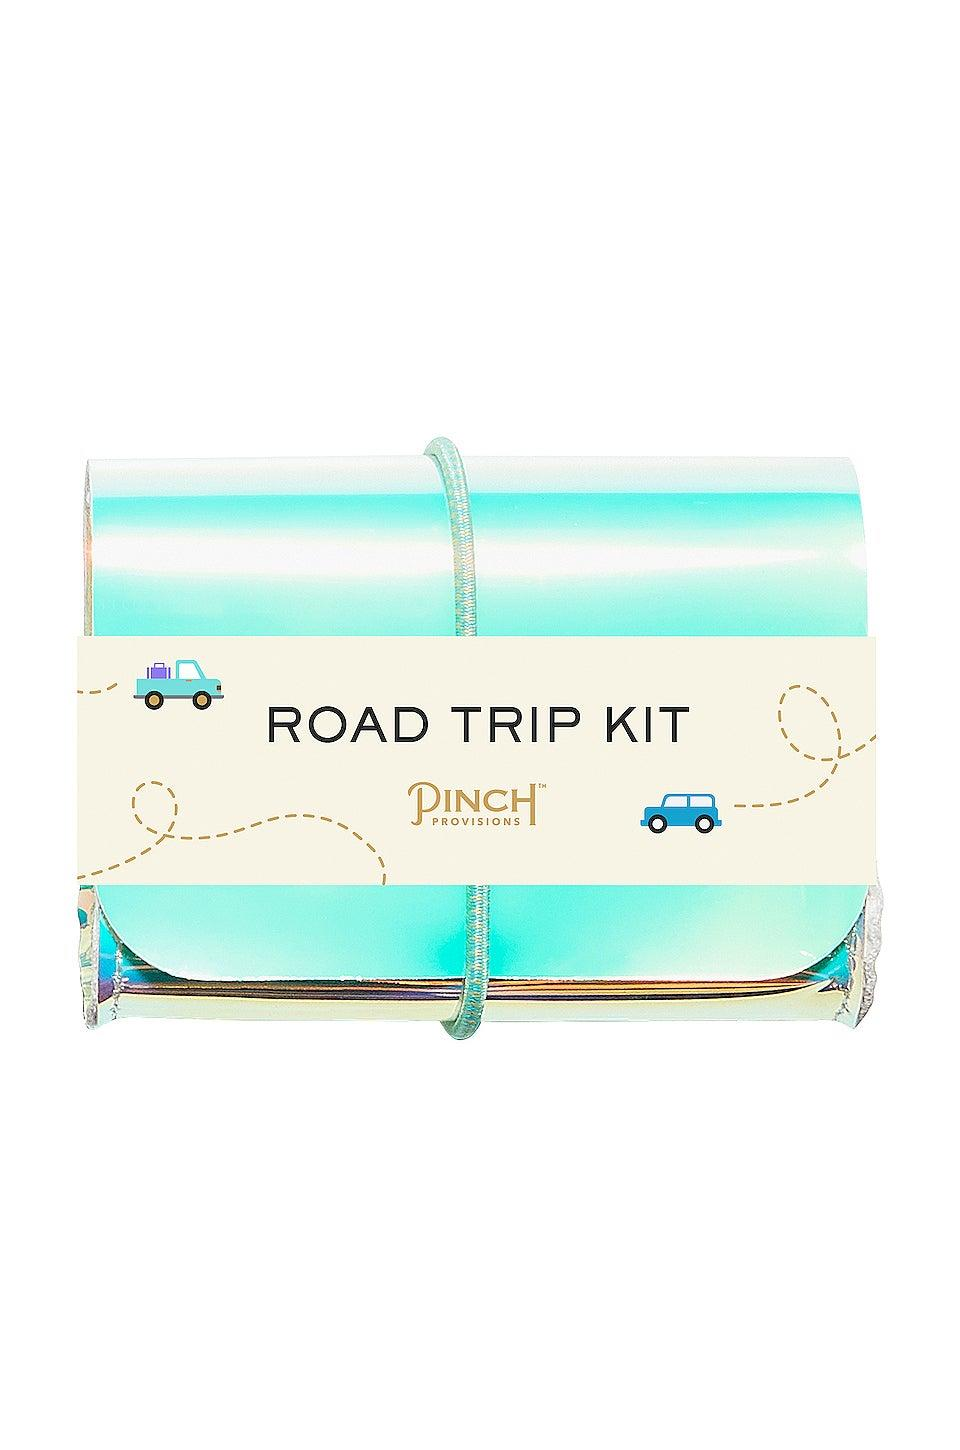 "<h2>Road Trip Kit</h2>We love anything that comes with a bunch of miniature necessities, which is why our bathrooms are full of tiny hotel soaps. This kit has everything you need on the road, including personal hand wipes, lens cleaners, and bandaids.<br><br><br><strong>Pinch Provisions</strong> Road Trip Kit, $, available at <a href=""https://go.skimresources.com/?id=30283X879131&url=https%3A%2F%2Fwww.revolve.com%2Fpinch-provisions-road-trip-kit%2Fdp%2FPPRO-WU38%2F"" rel=""nofollow noopener"" target=""_blank"" data-ylk=""slk:Revolve"" class=""link rapid-noclick-resp"">Revolve</a>"